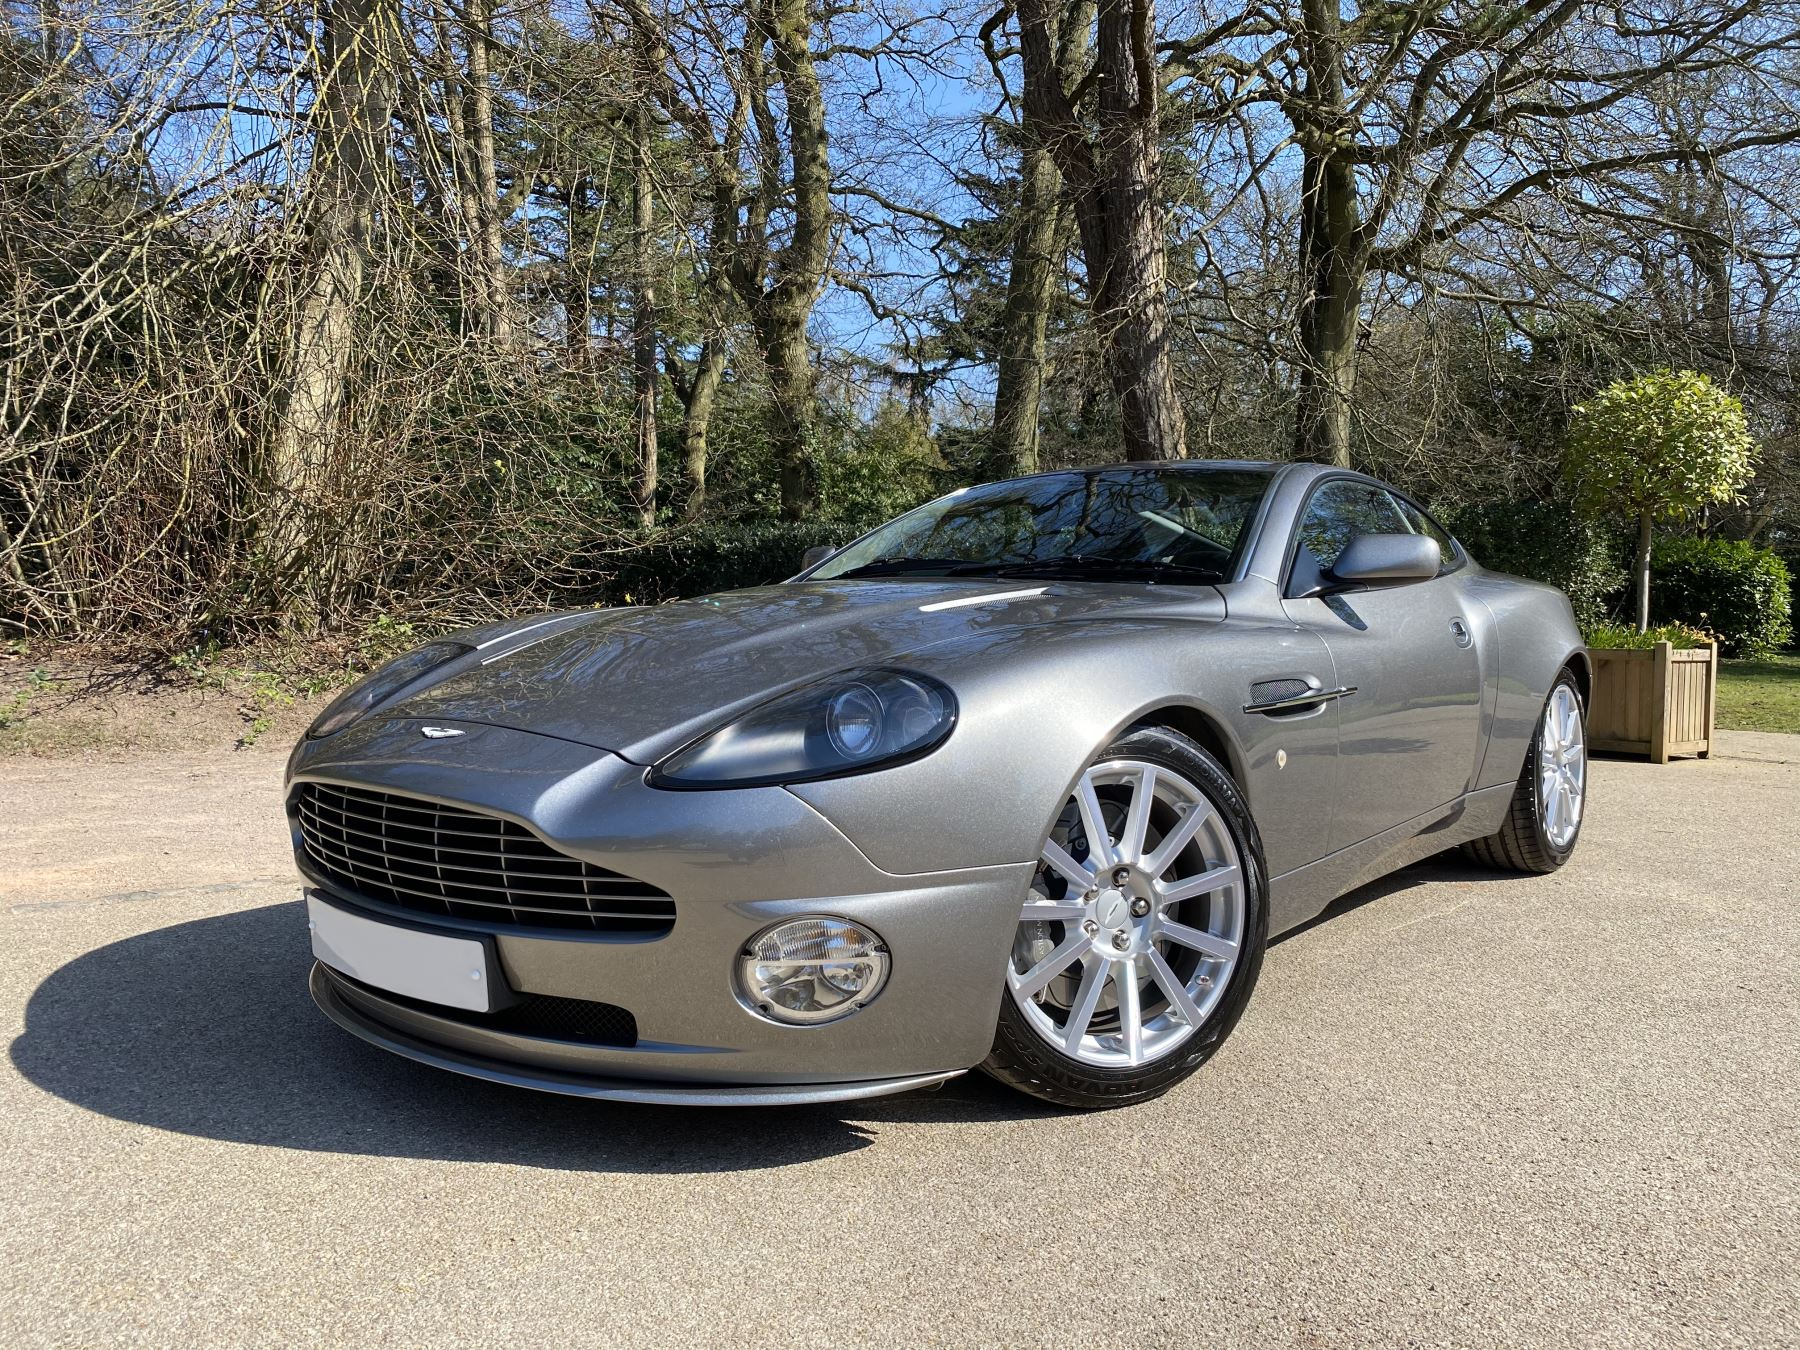 Aston Martin Vanquish S S V12 2+0 2dr 5.9 Automatic Coupe